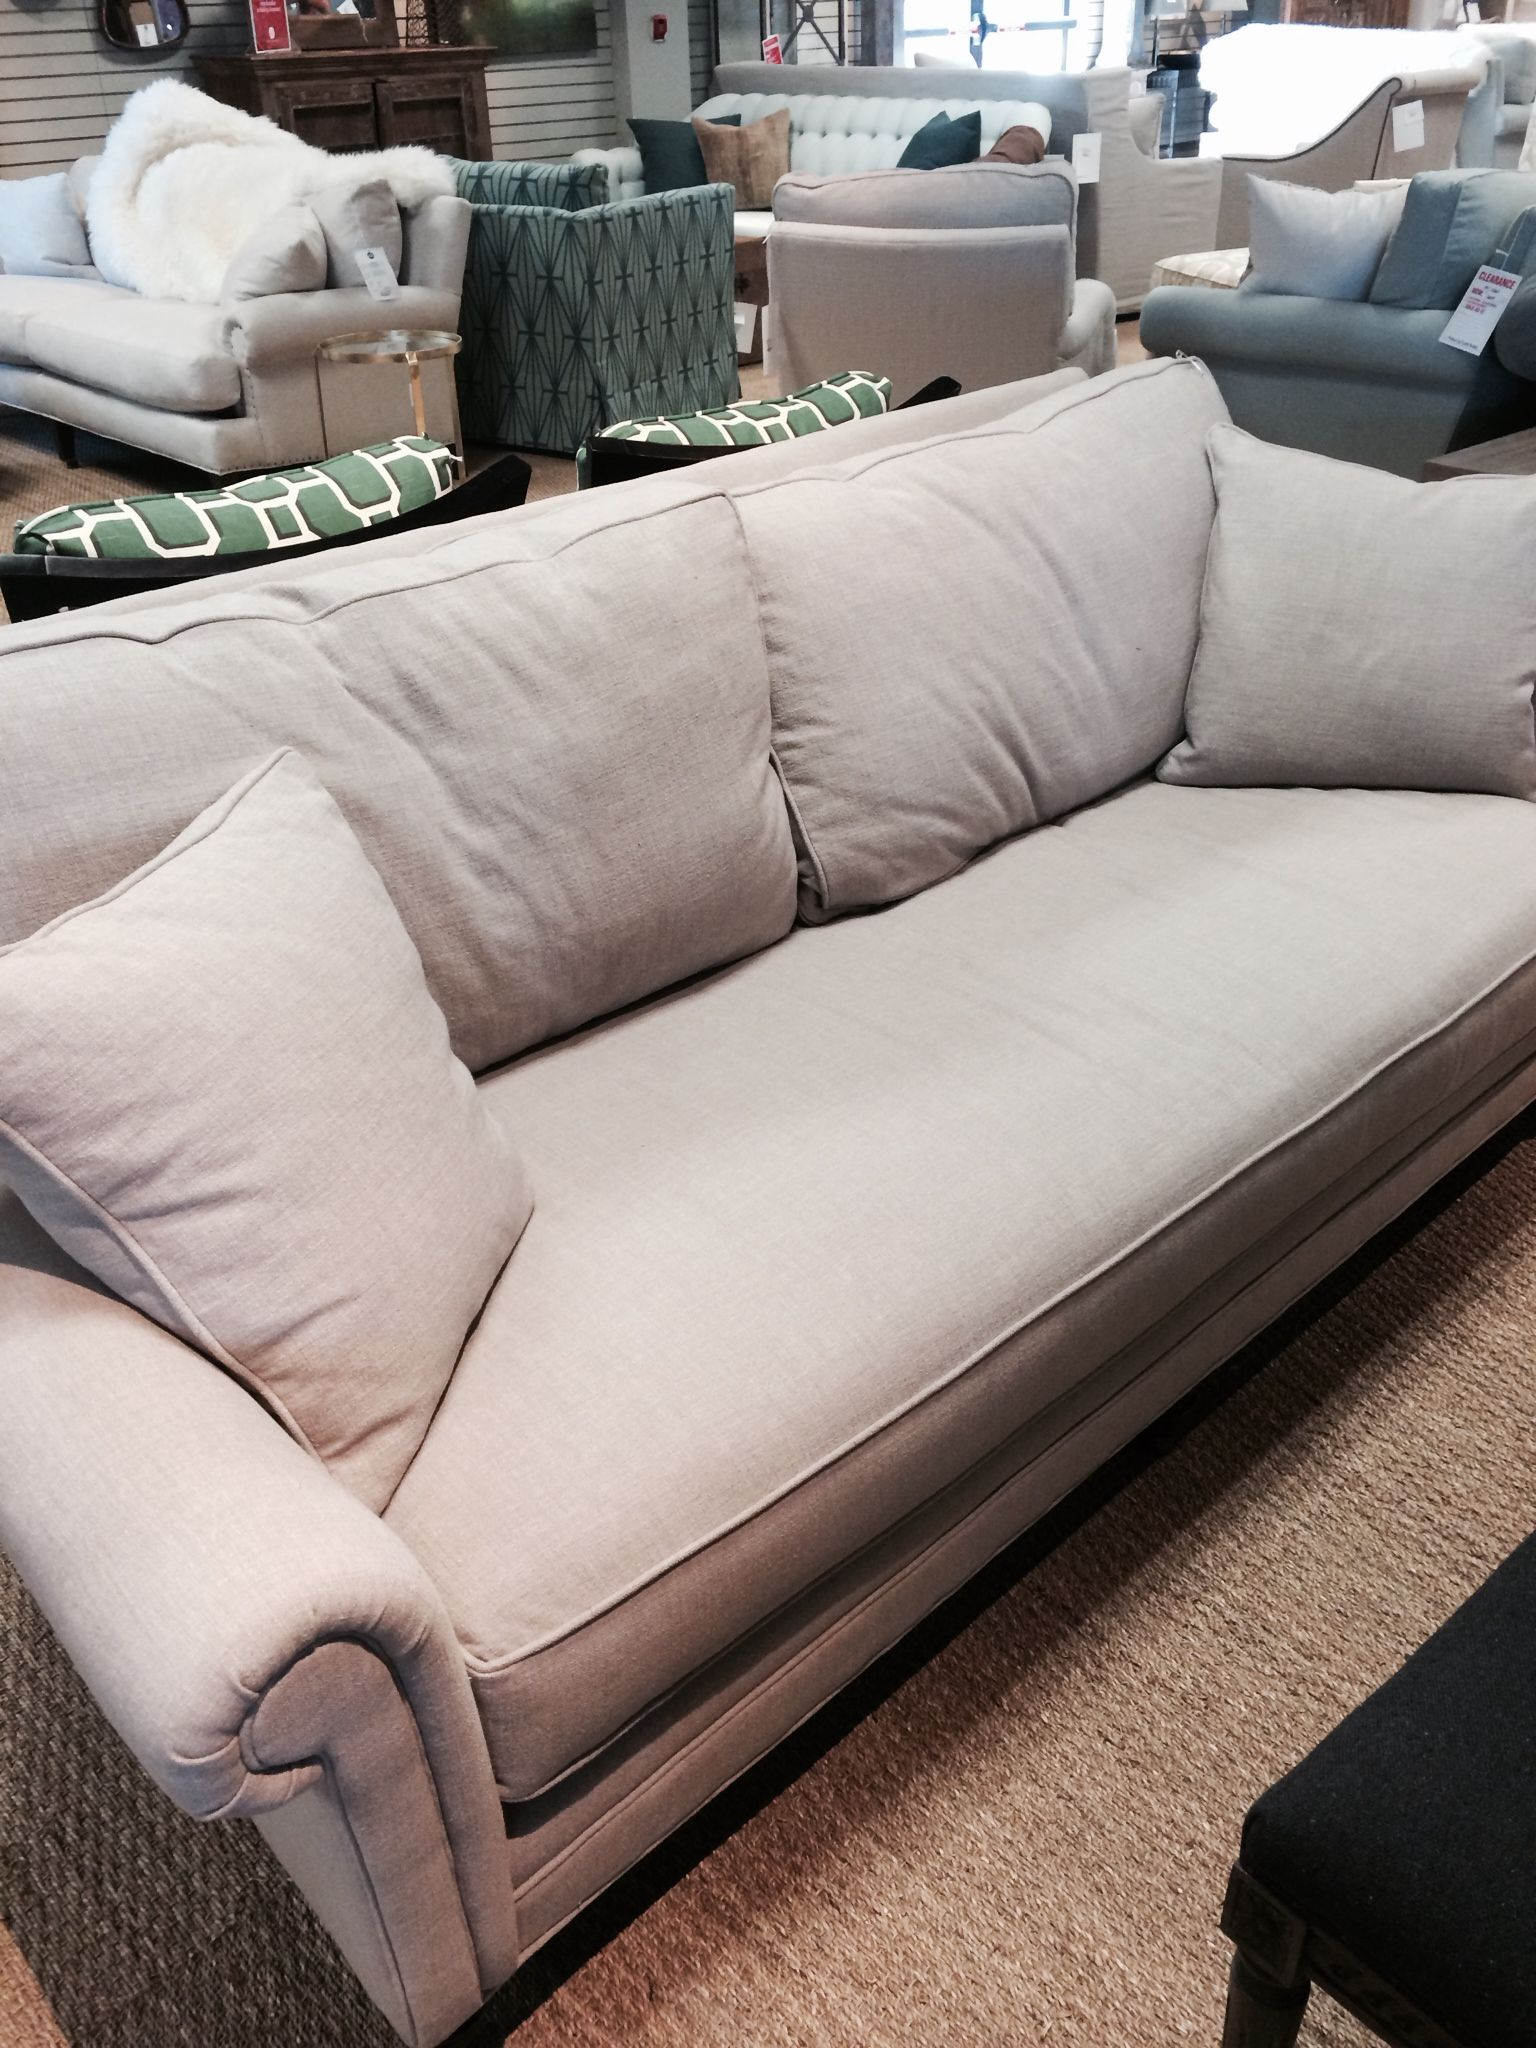 price tag on Miles Talbott sofa at GDC